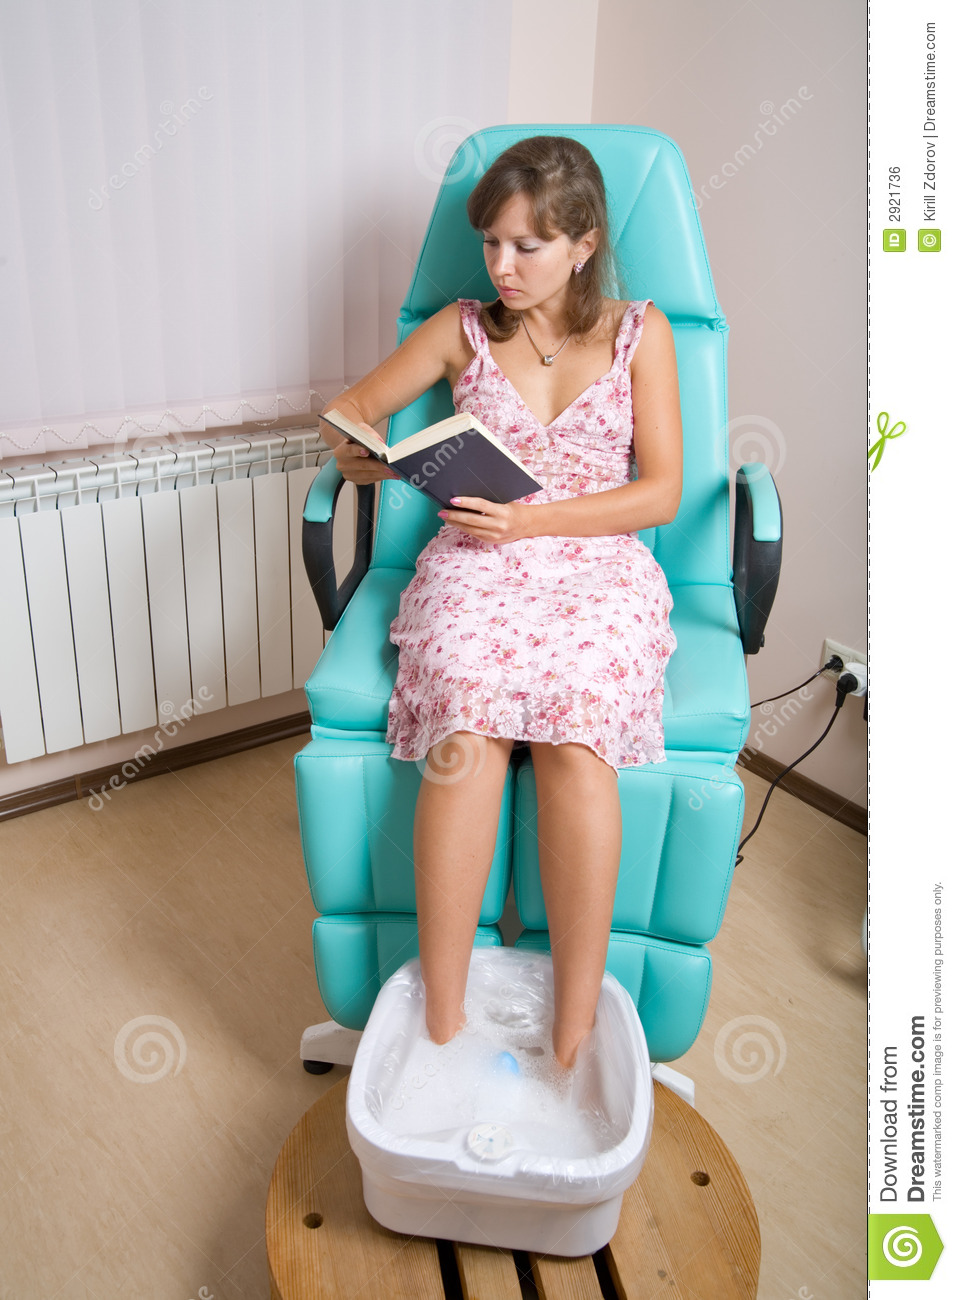 reading at beauty salon royalty free stock image image